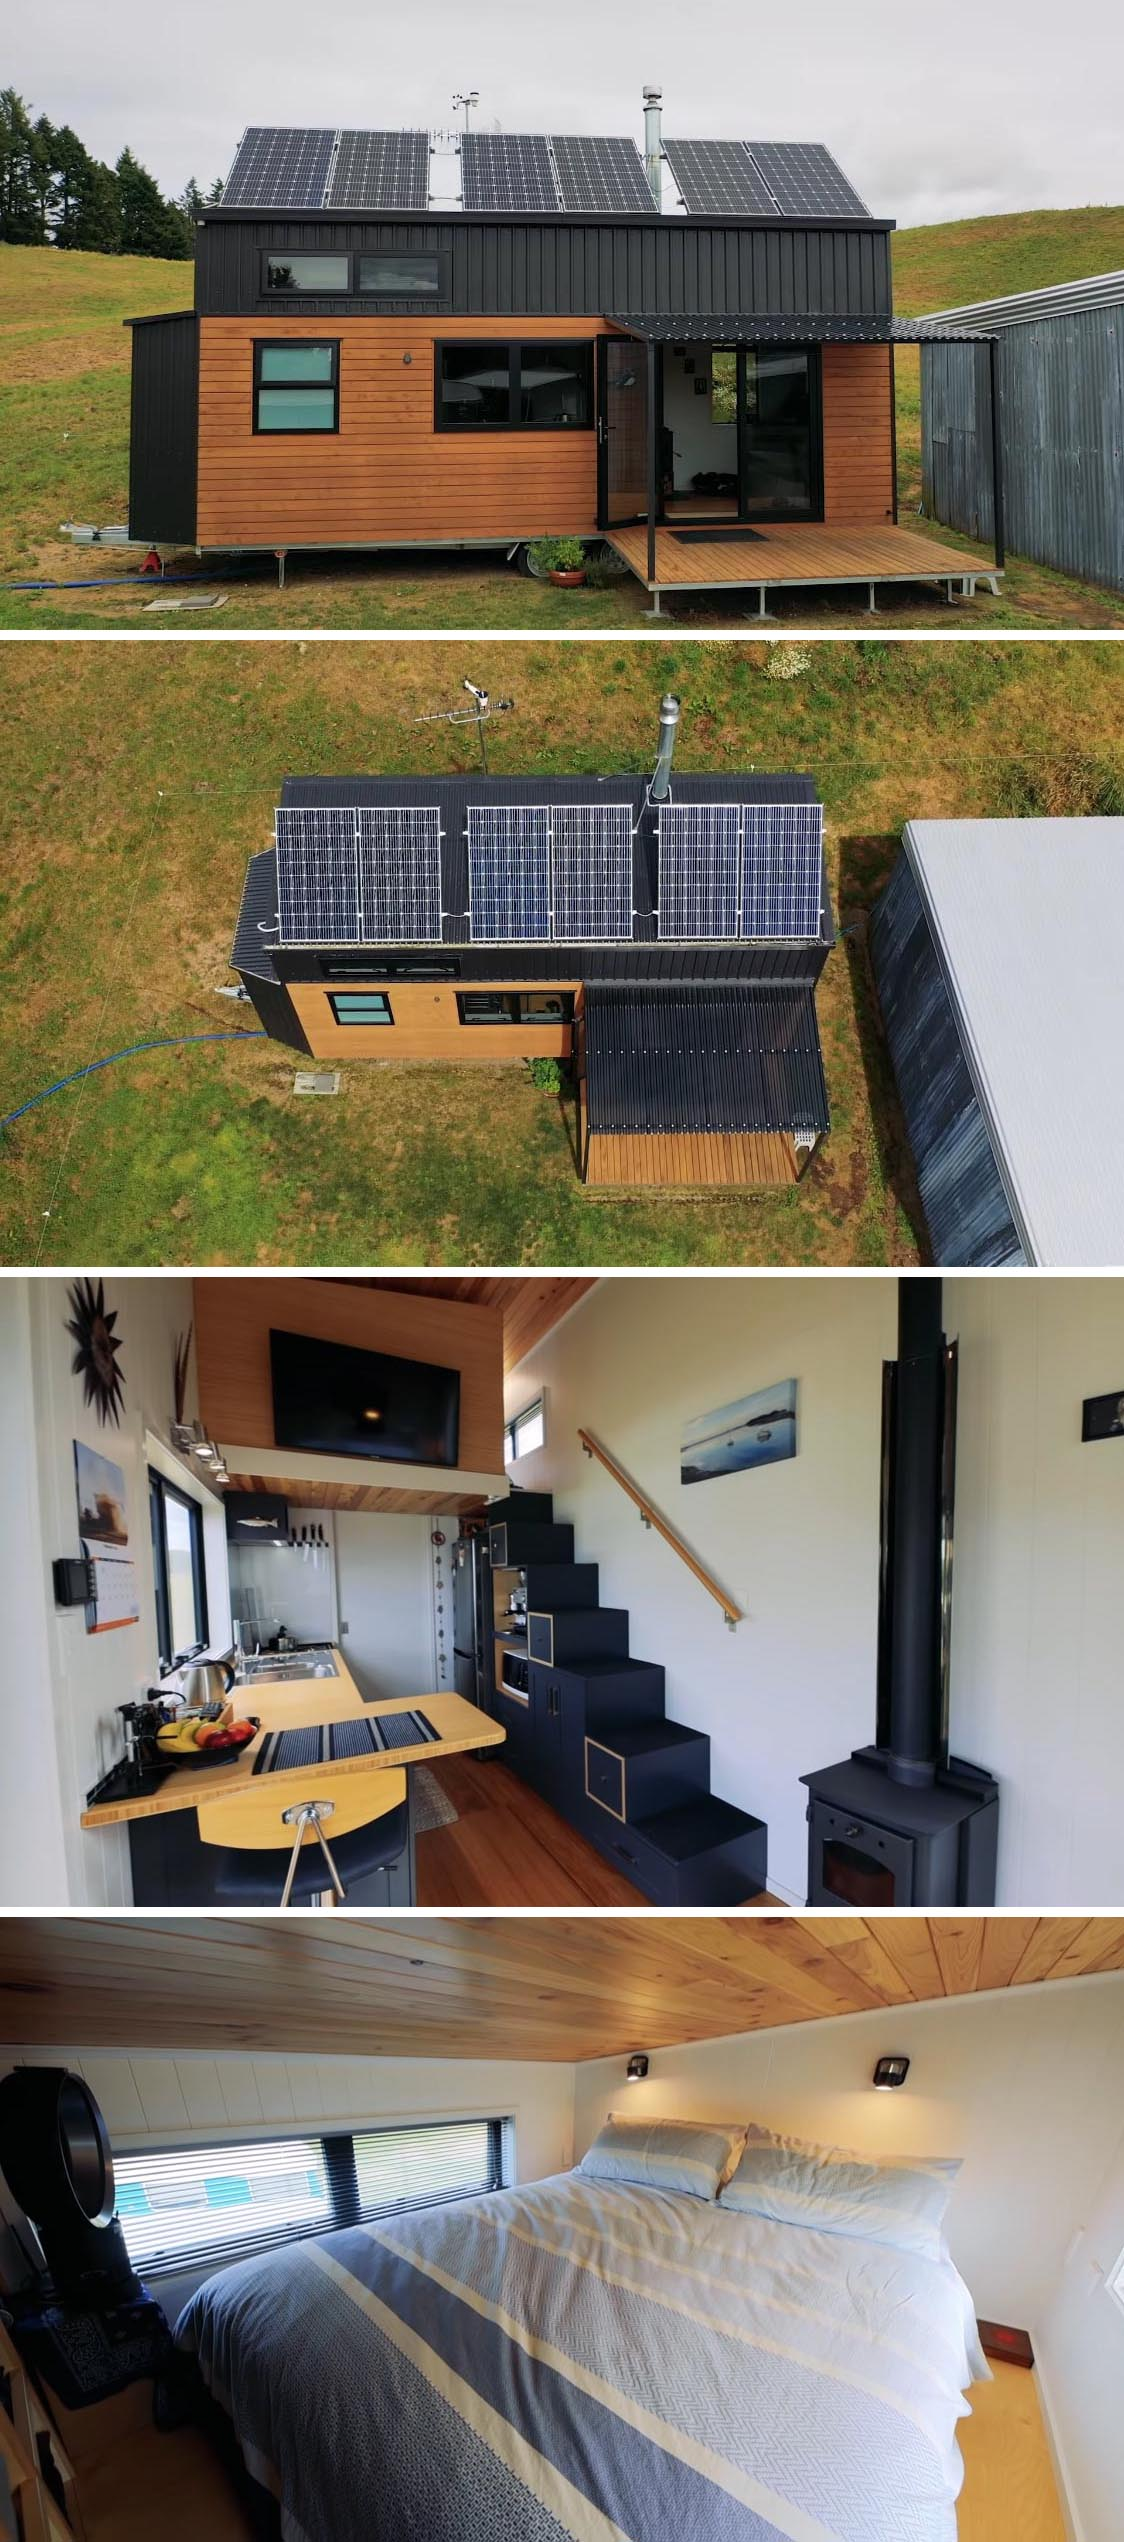 This handcrafted tiny house in New Zealand, has been designed to be off-the-grid, with solar panels and a rainwater collection system. There's also black metal and wood siding with a small covered deck, and a modern interior with lofted bedroom.